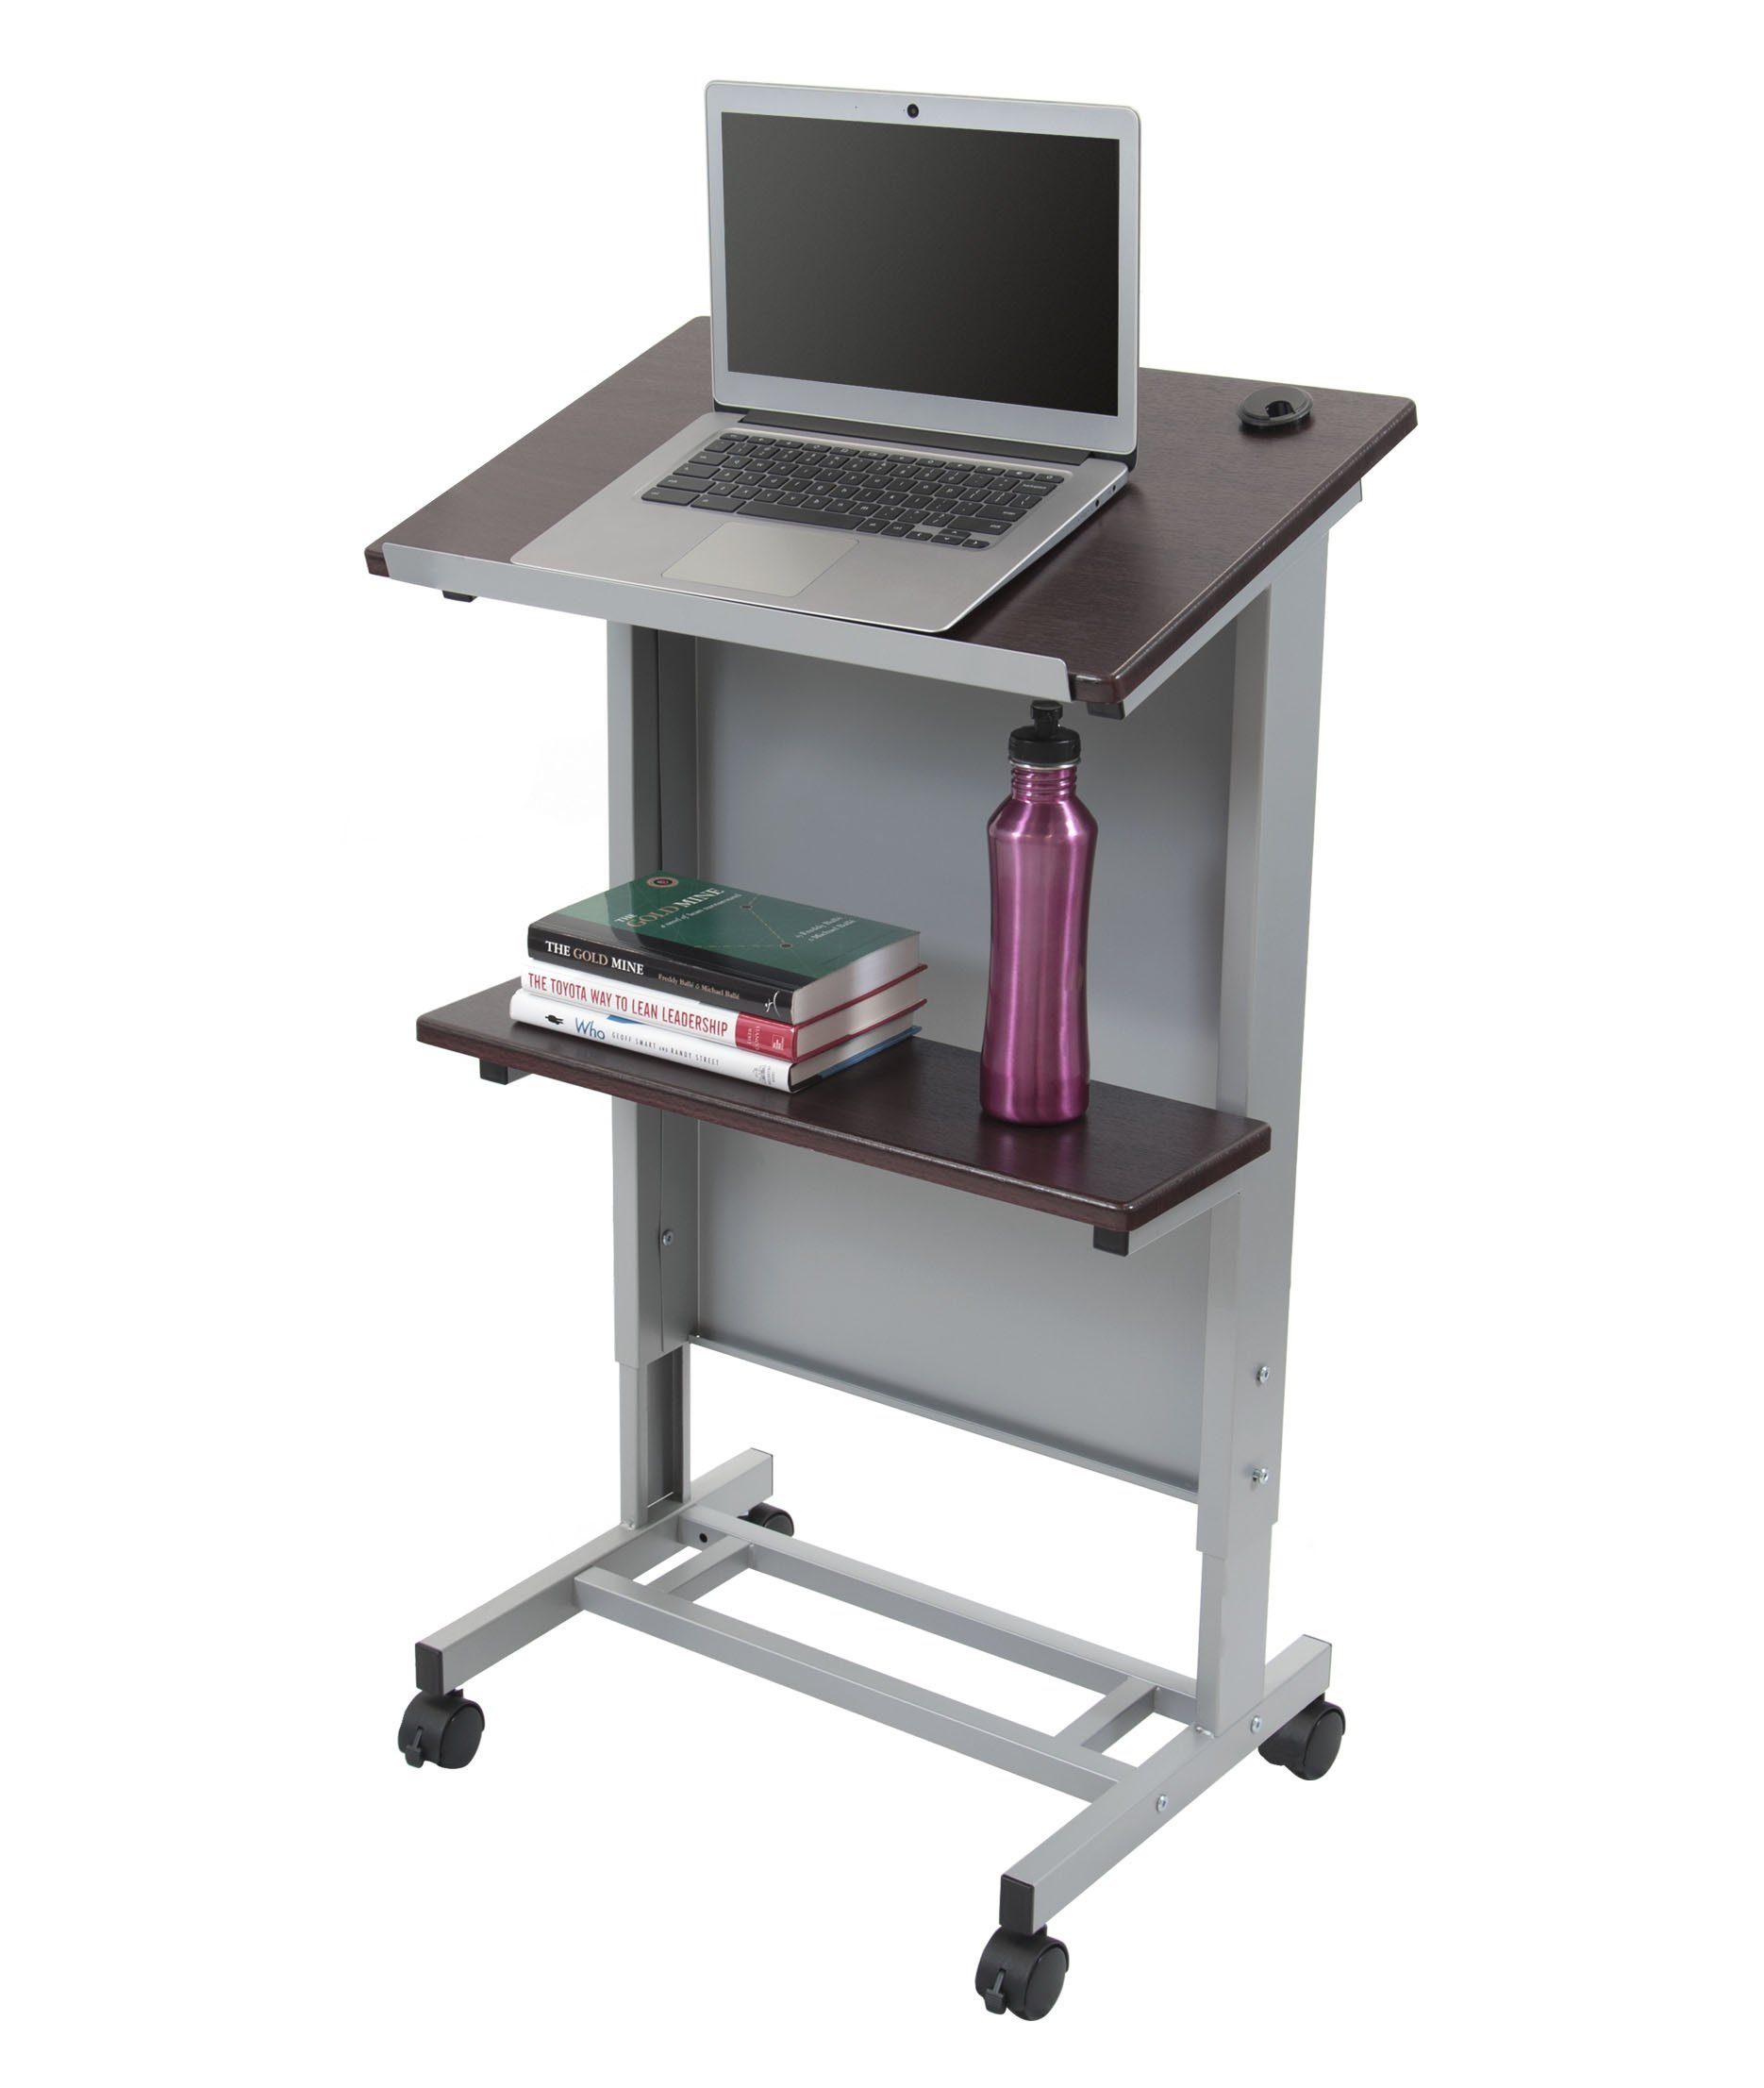 Stand Up Desk Store Mobile Adjustable Height Lectern Podium, Heavy Duty Steel Frame by Stand Up Desk Store